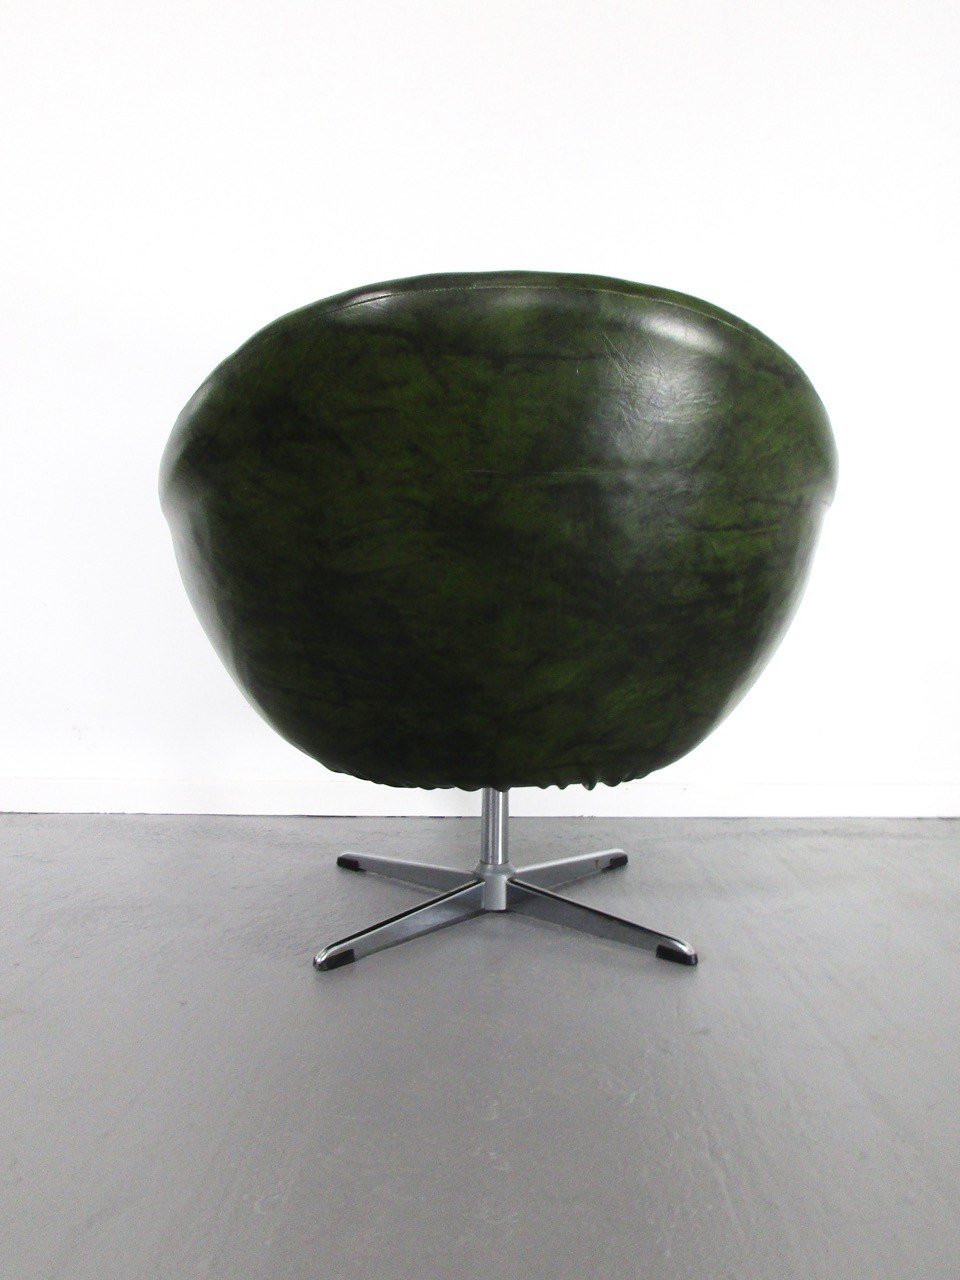 Ikea Sitzei Kugel Sessel. Amazing Ball Chair Adelta Original Aarnio